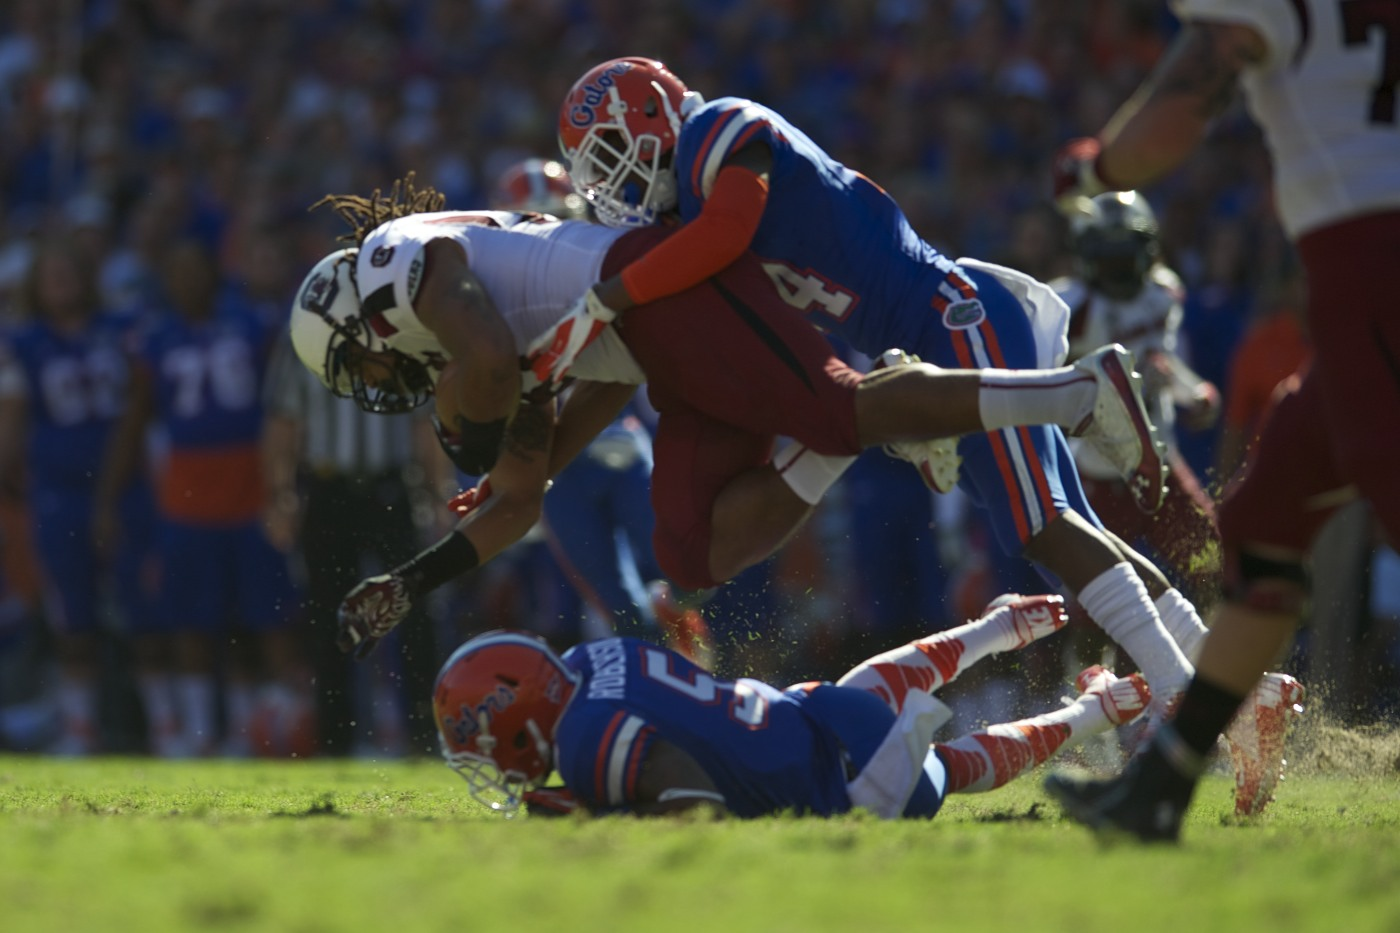 Florida's Andre Debose takes down a member of the South Carolina offense.